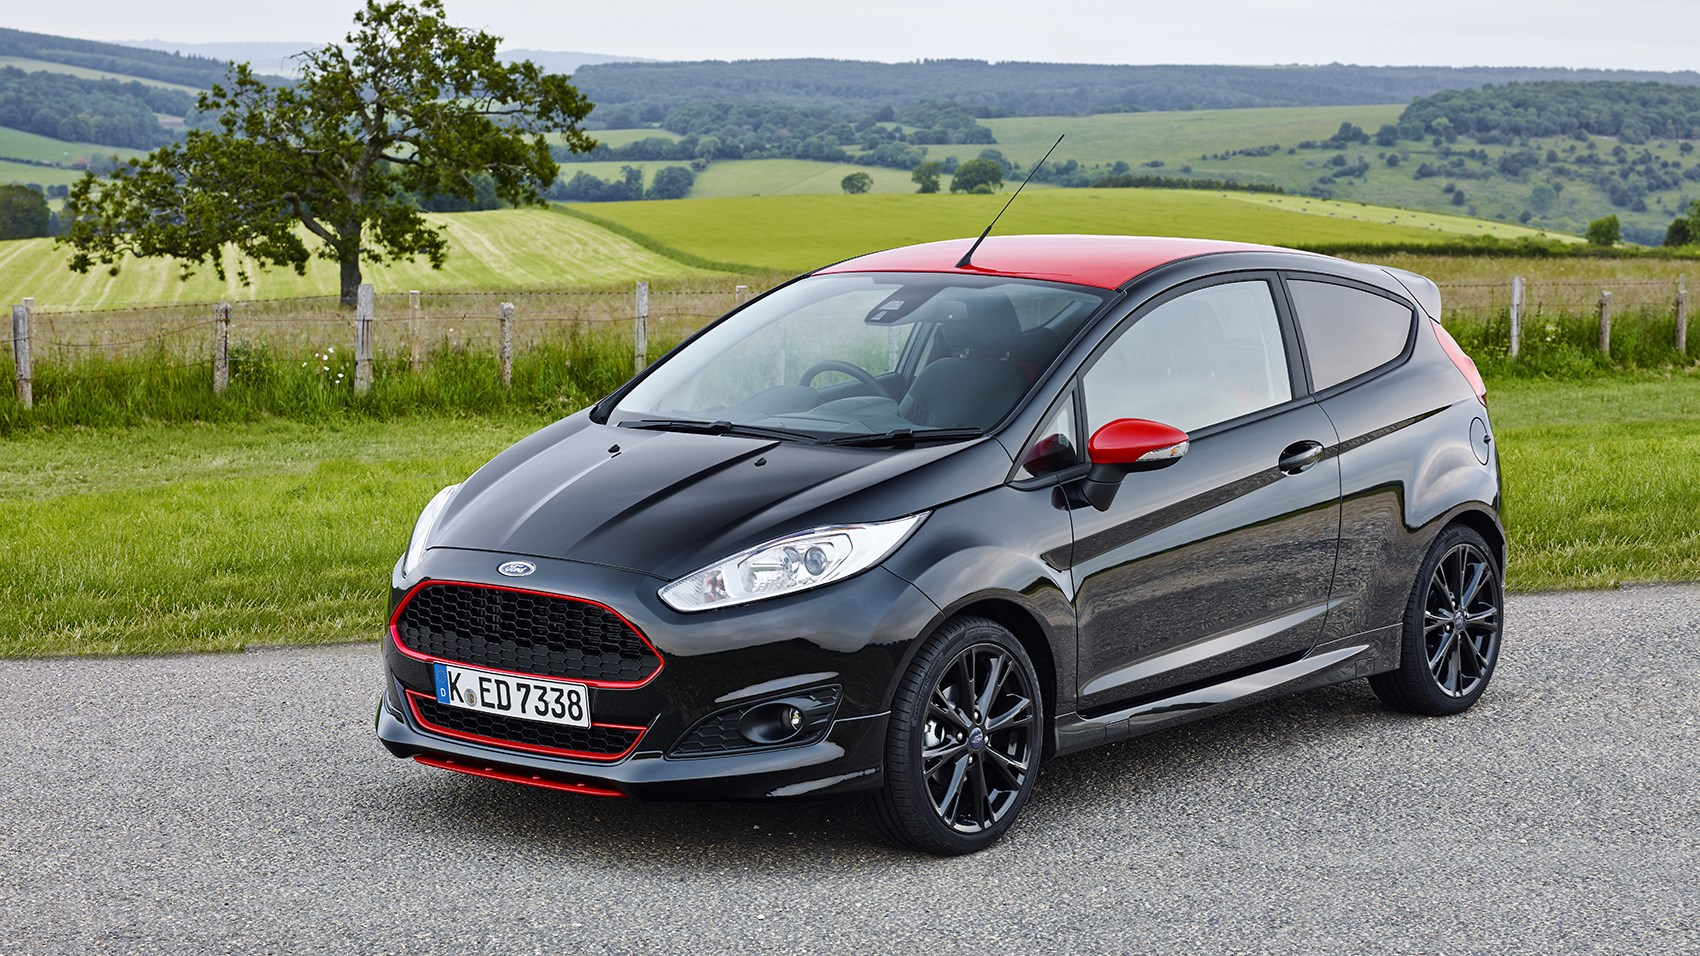 ford fiesta 1 0 ecoboost 140ps st line black edition 2016 review by car magazine. Black Bedroom Furniture Sets. Home Design Ideas